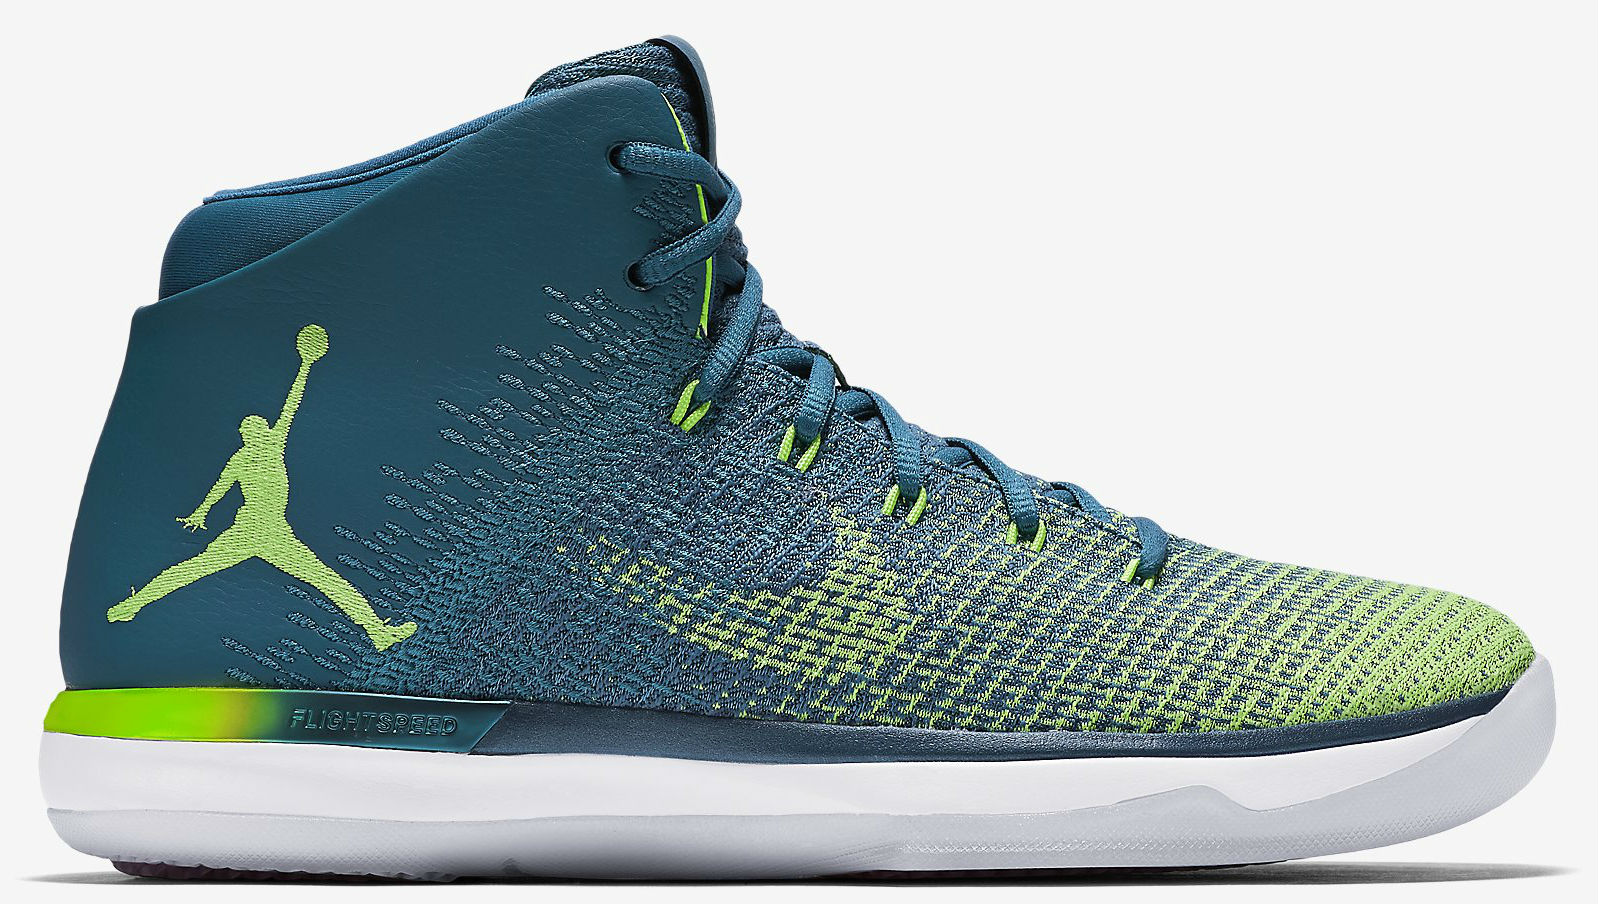 finest selection db333 af80b ... low price rio jordan 31 release date side 845037 325 6aa54 12f28